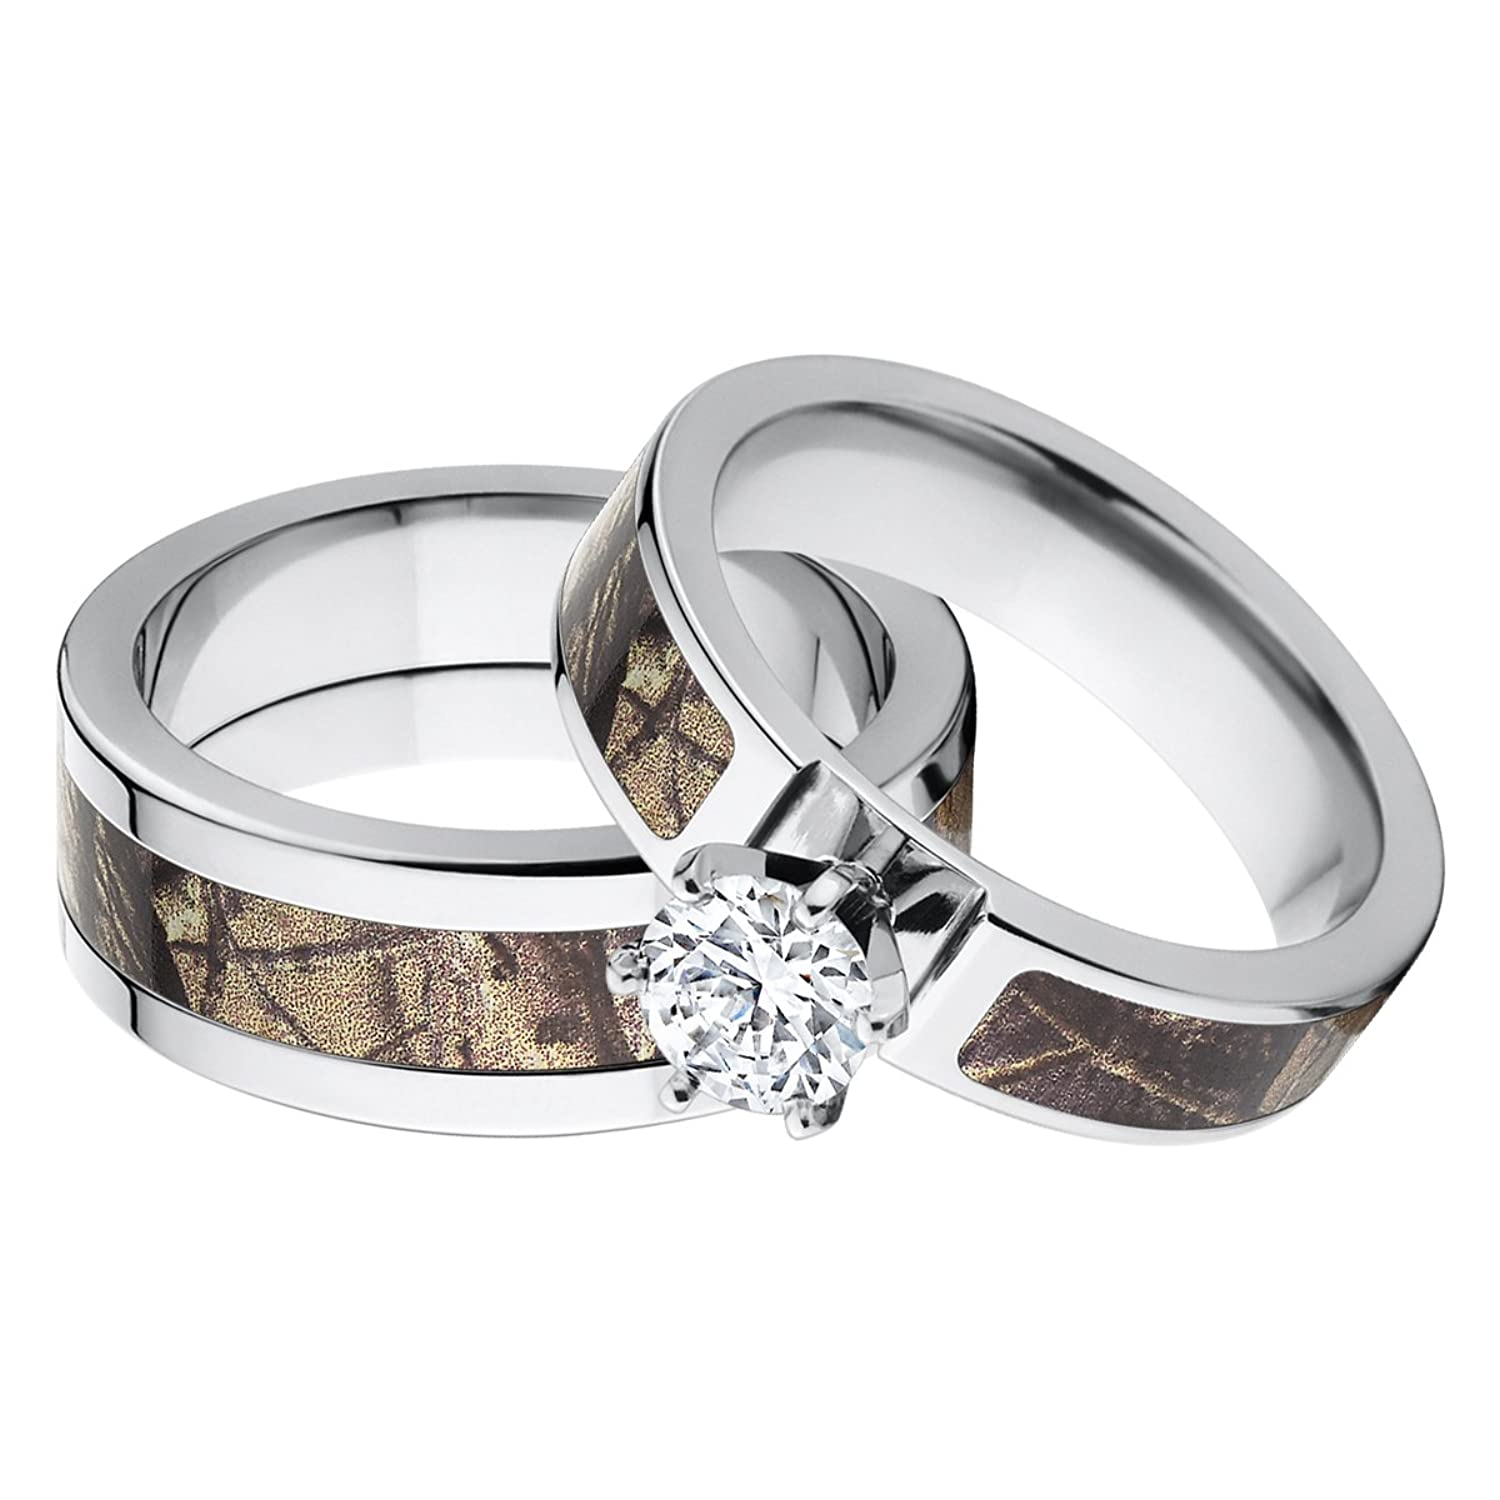 amazoncom his and hers matching realtree ap camouflage wedding ring set jewelry - Camo Wedding Rings With Real Diamonds